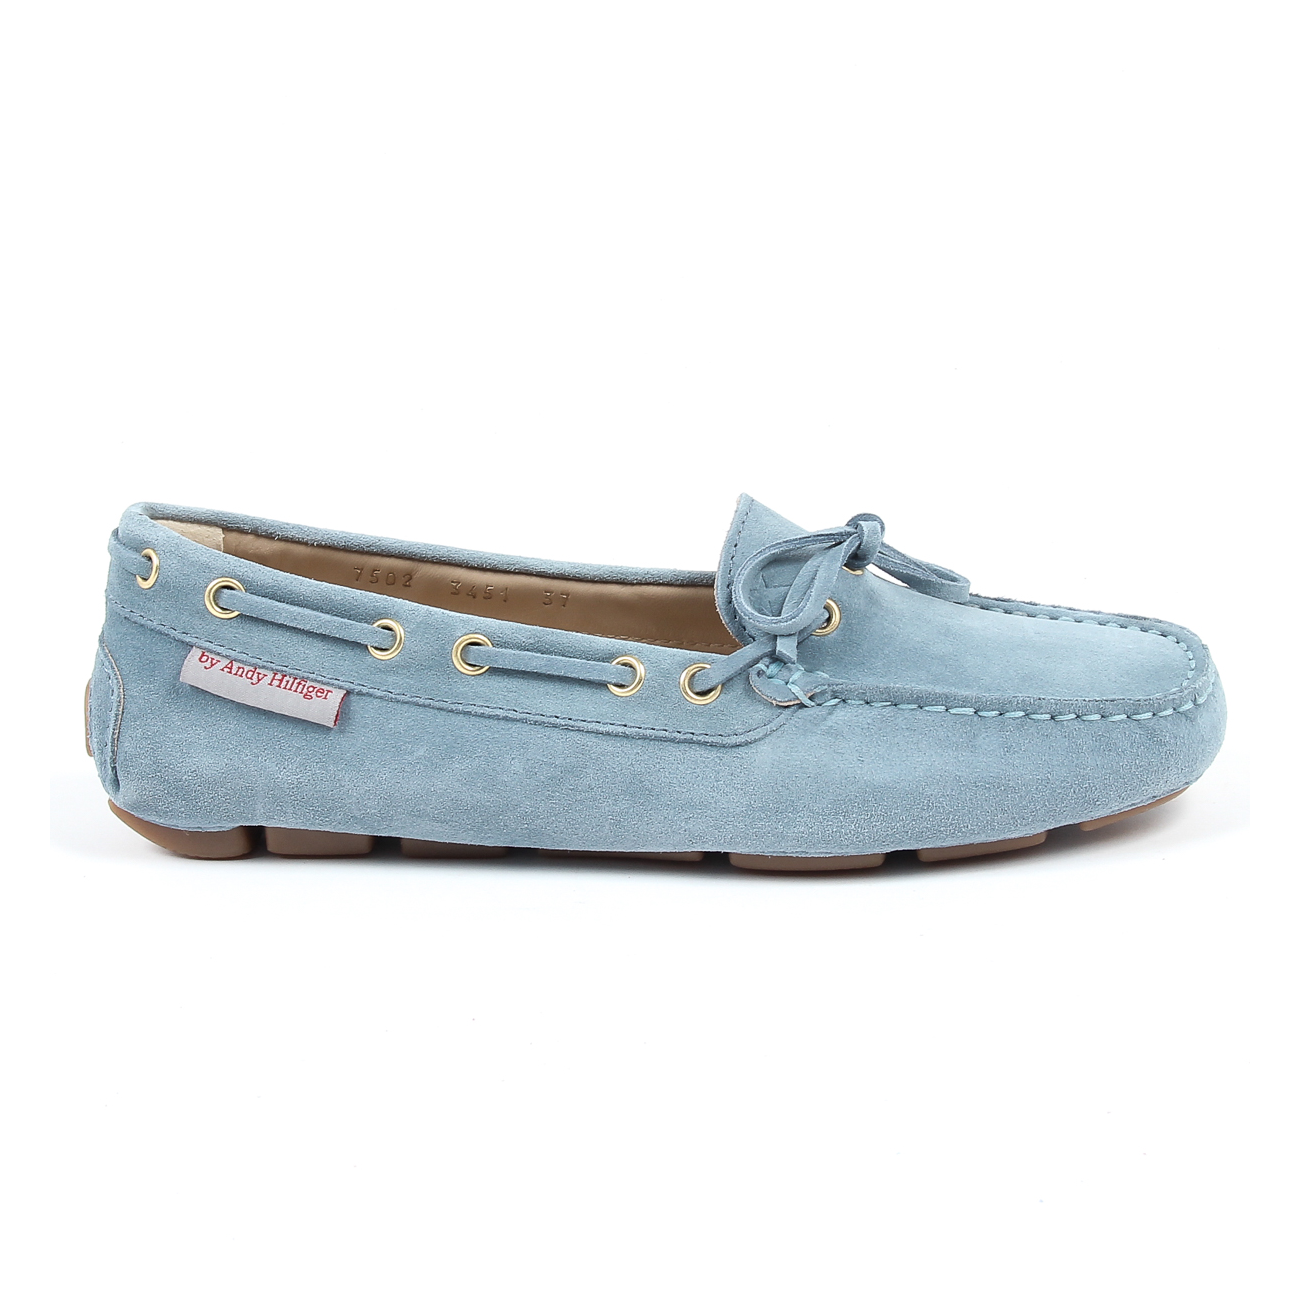 Andrew Charles Womens Loafer Light Blue CAMILLA. Loading zoom